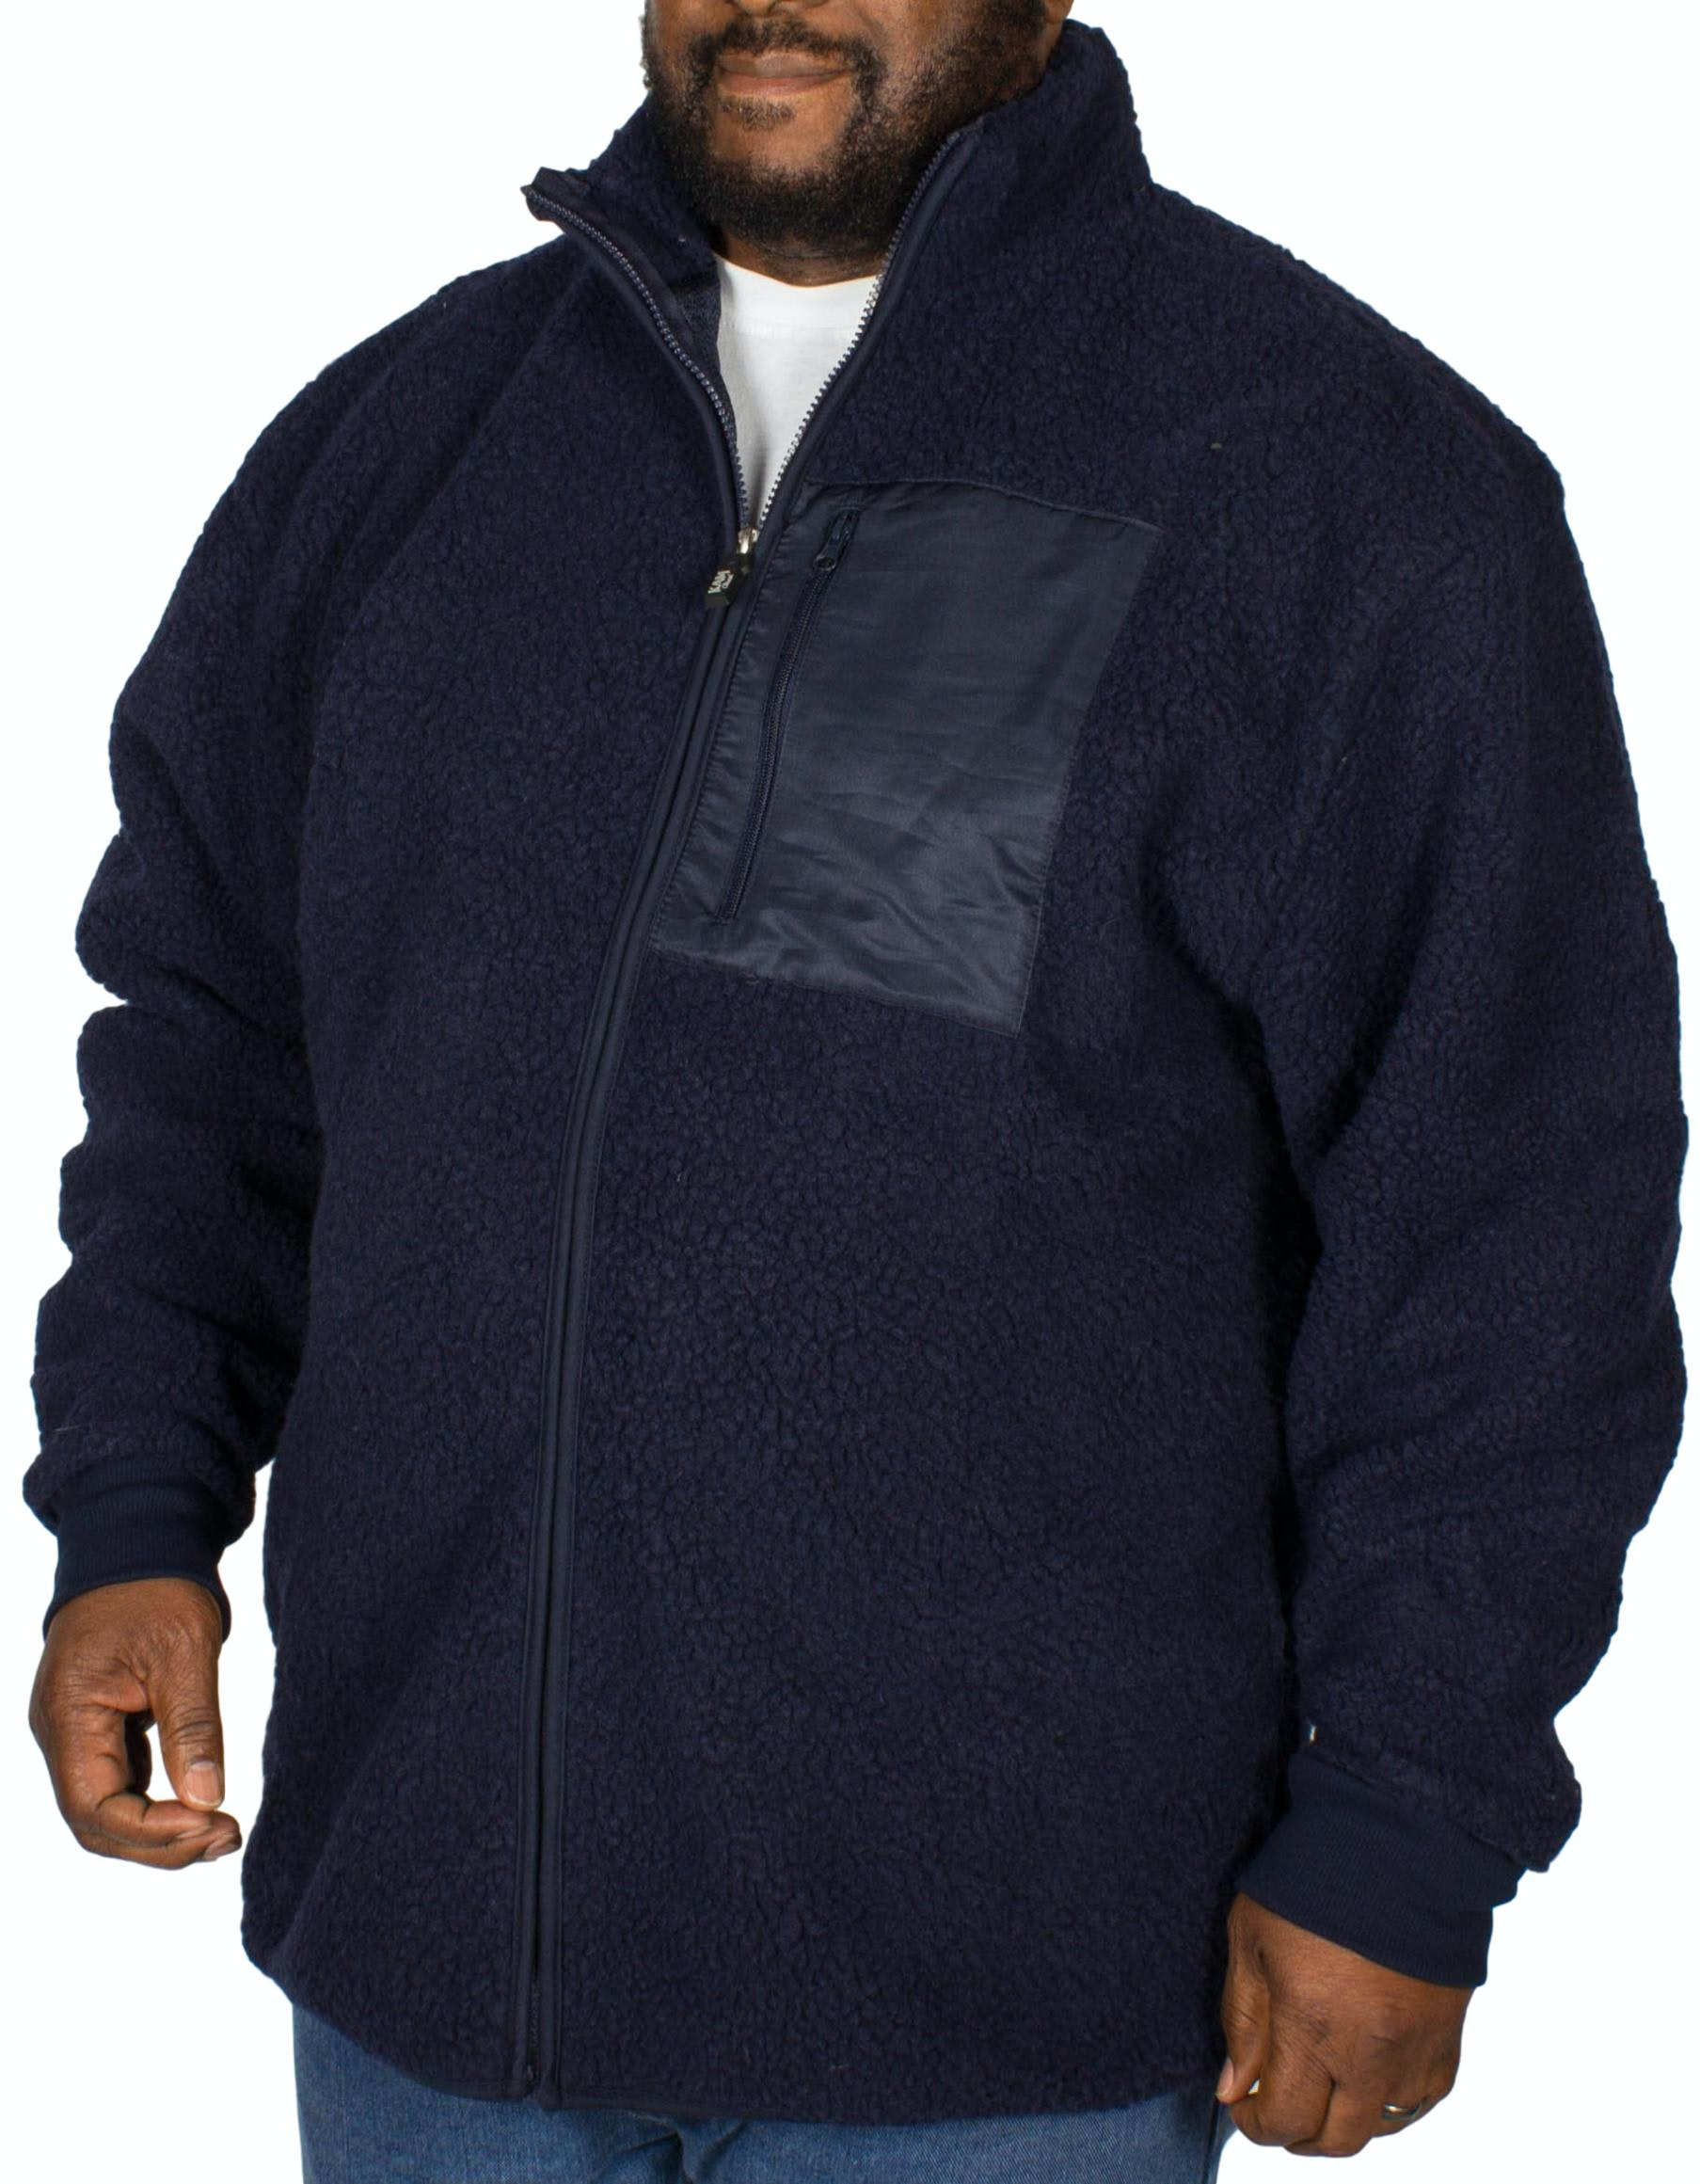 KAM Teddy Fleece Jacket Navy